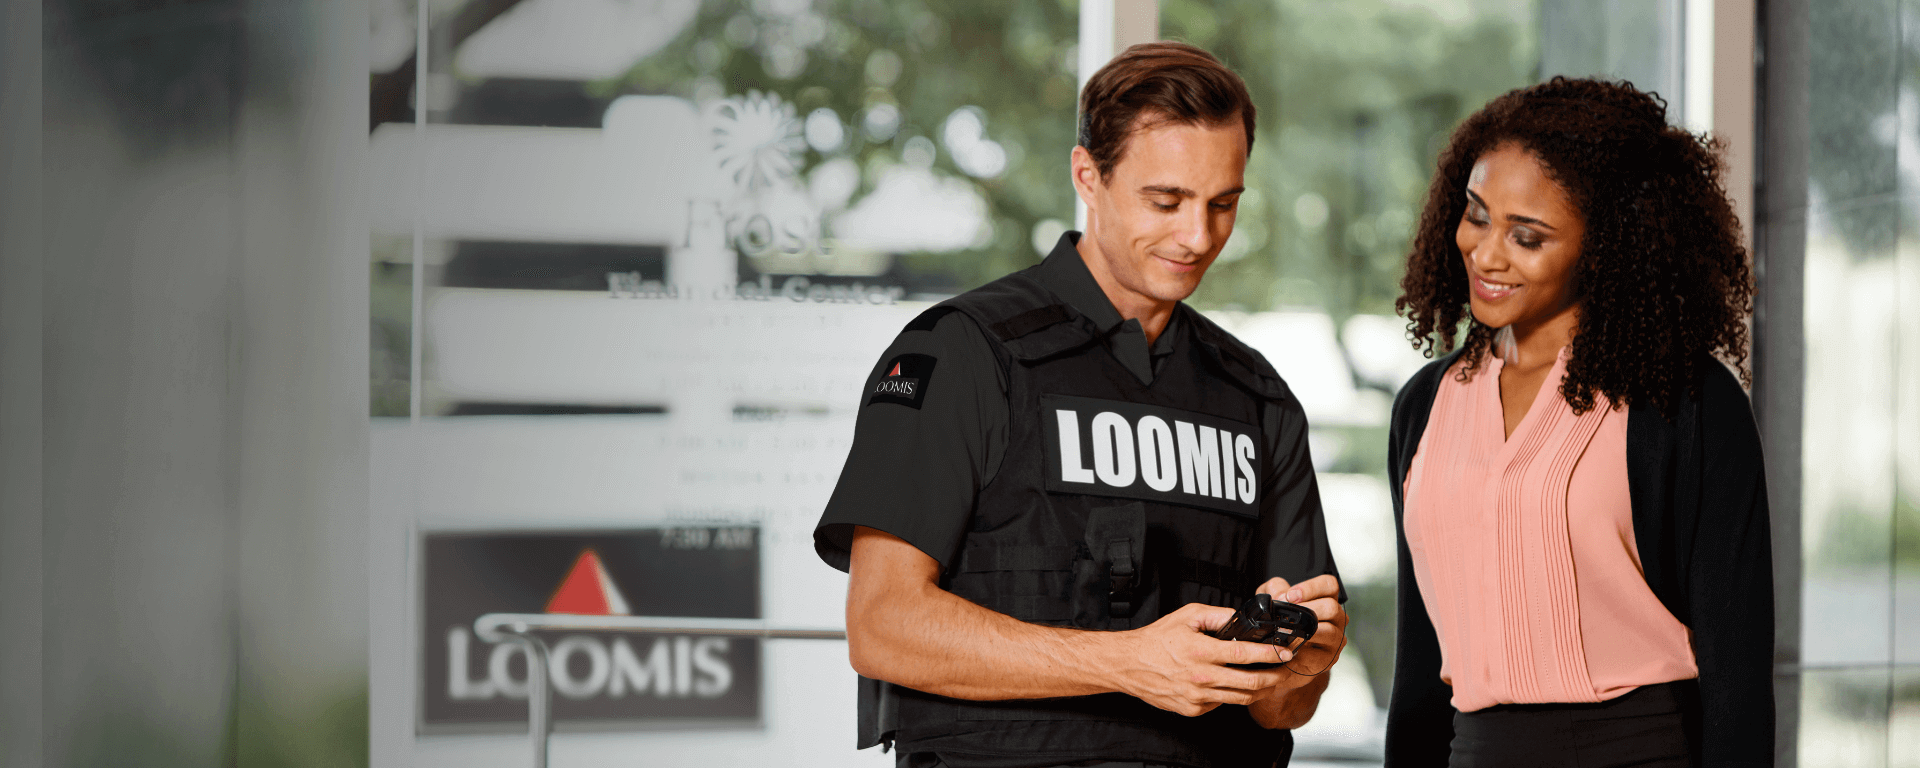 Loomis employee meeting with a customer